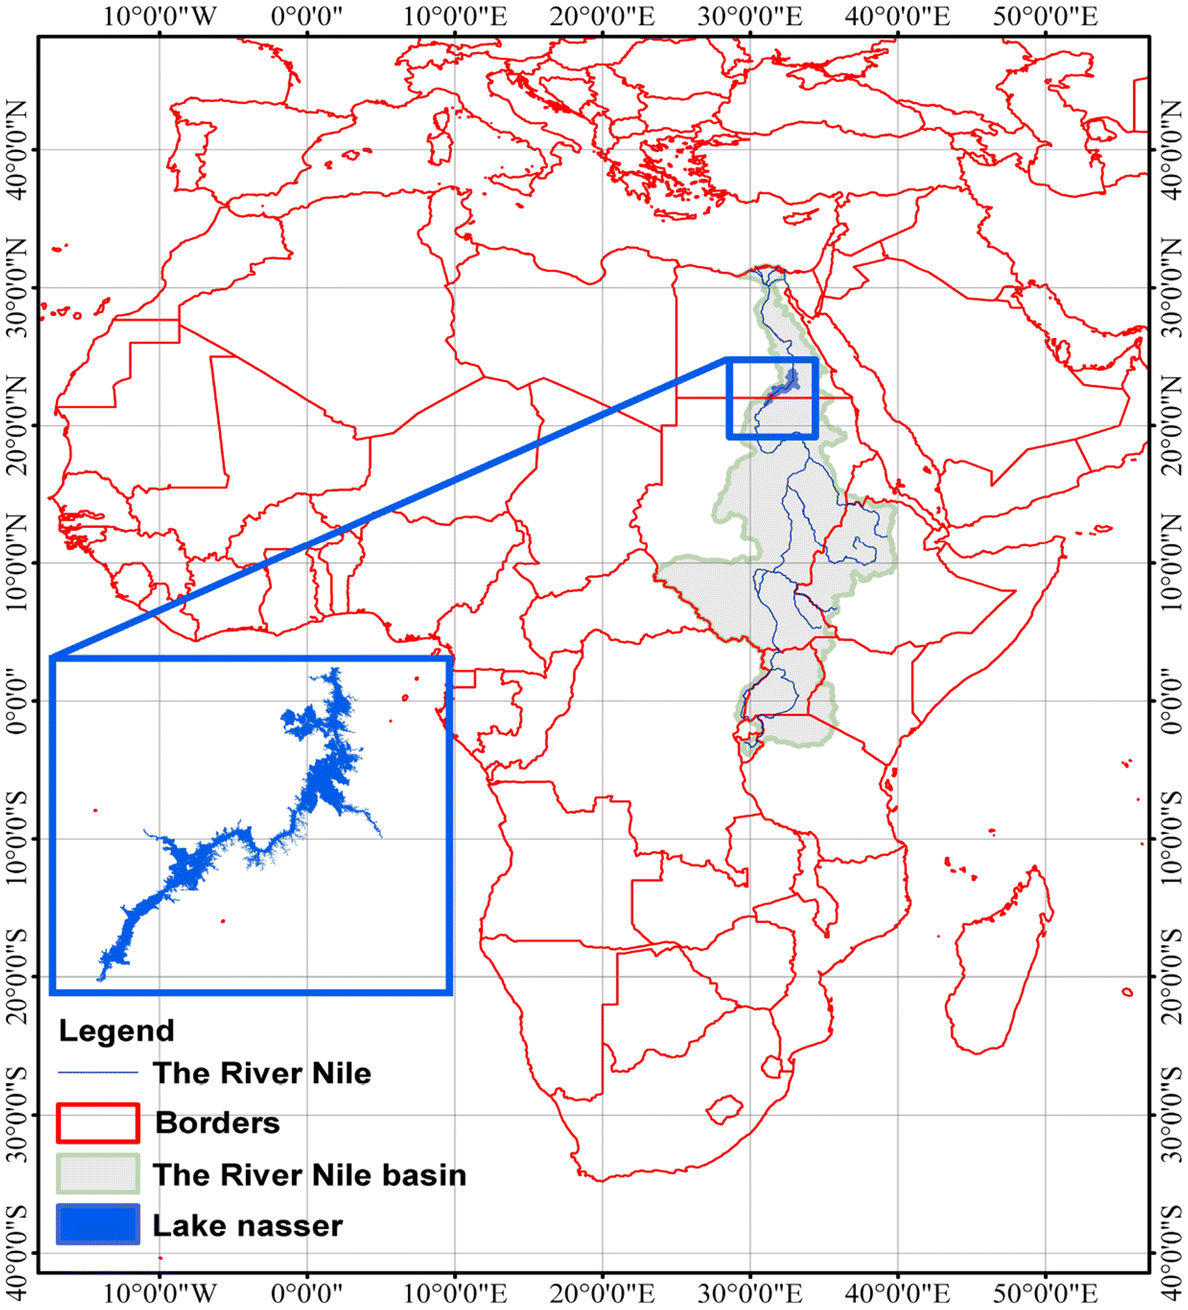 monitoring of water level fluctuation of lake nasser using altimetry The Blue Nile River open image in new window